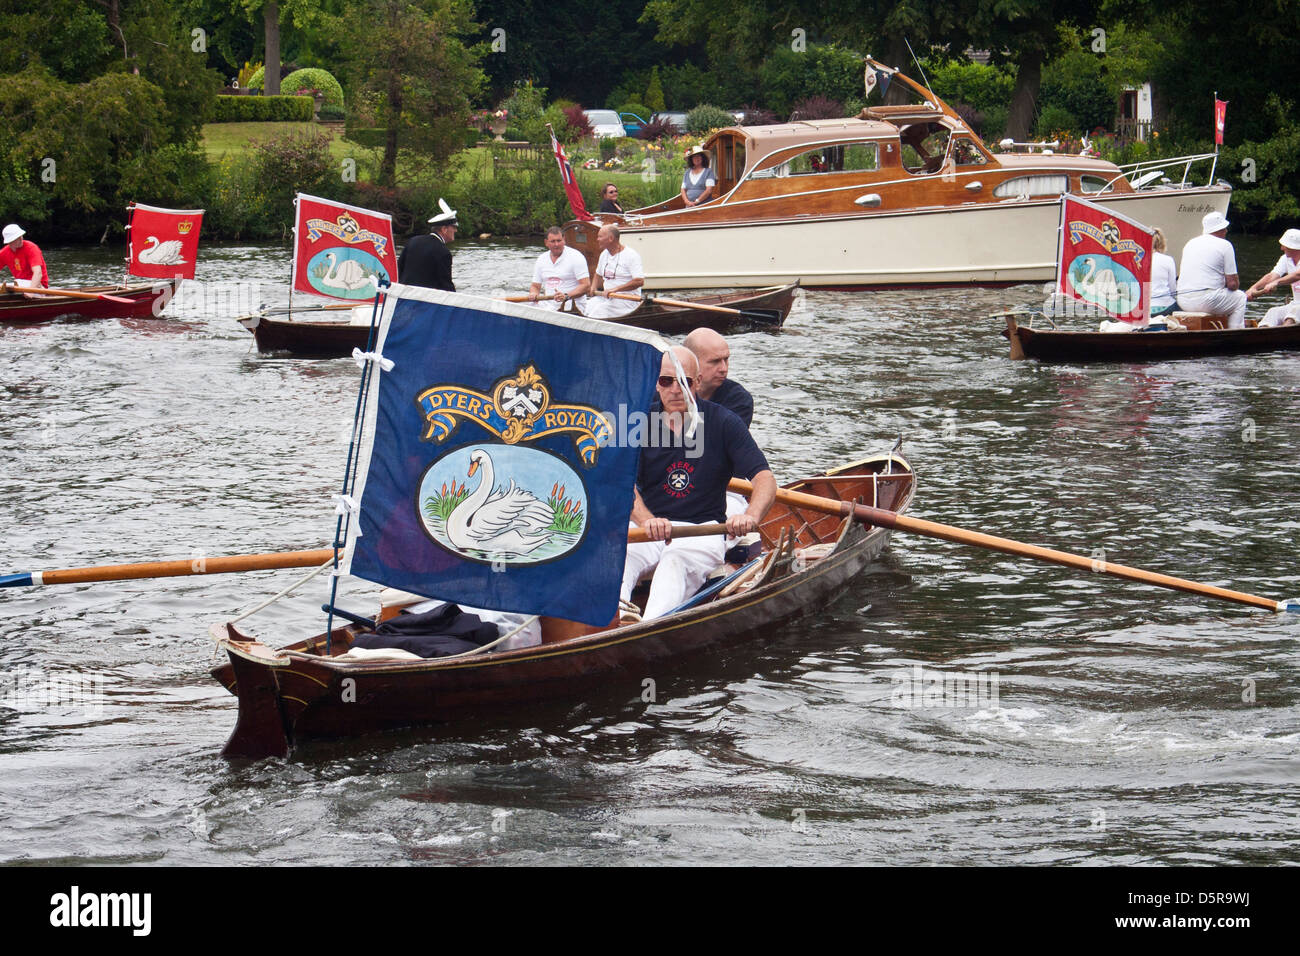 The Worshipful Company of Dyers row upstream on The River Thames during the annual swan upping ceremony. - Stock Image